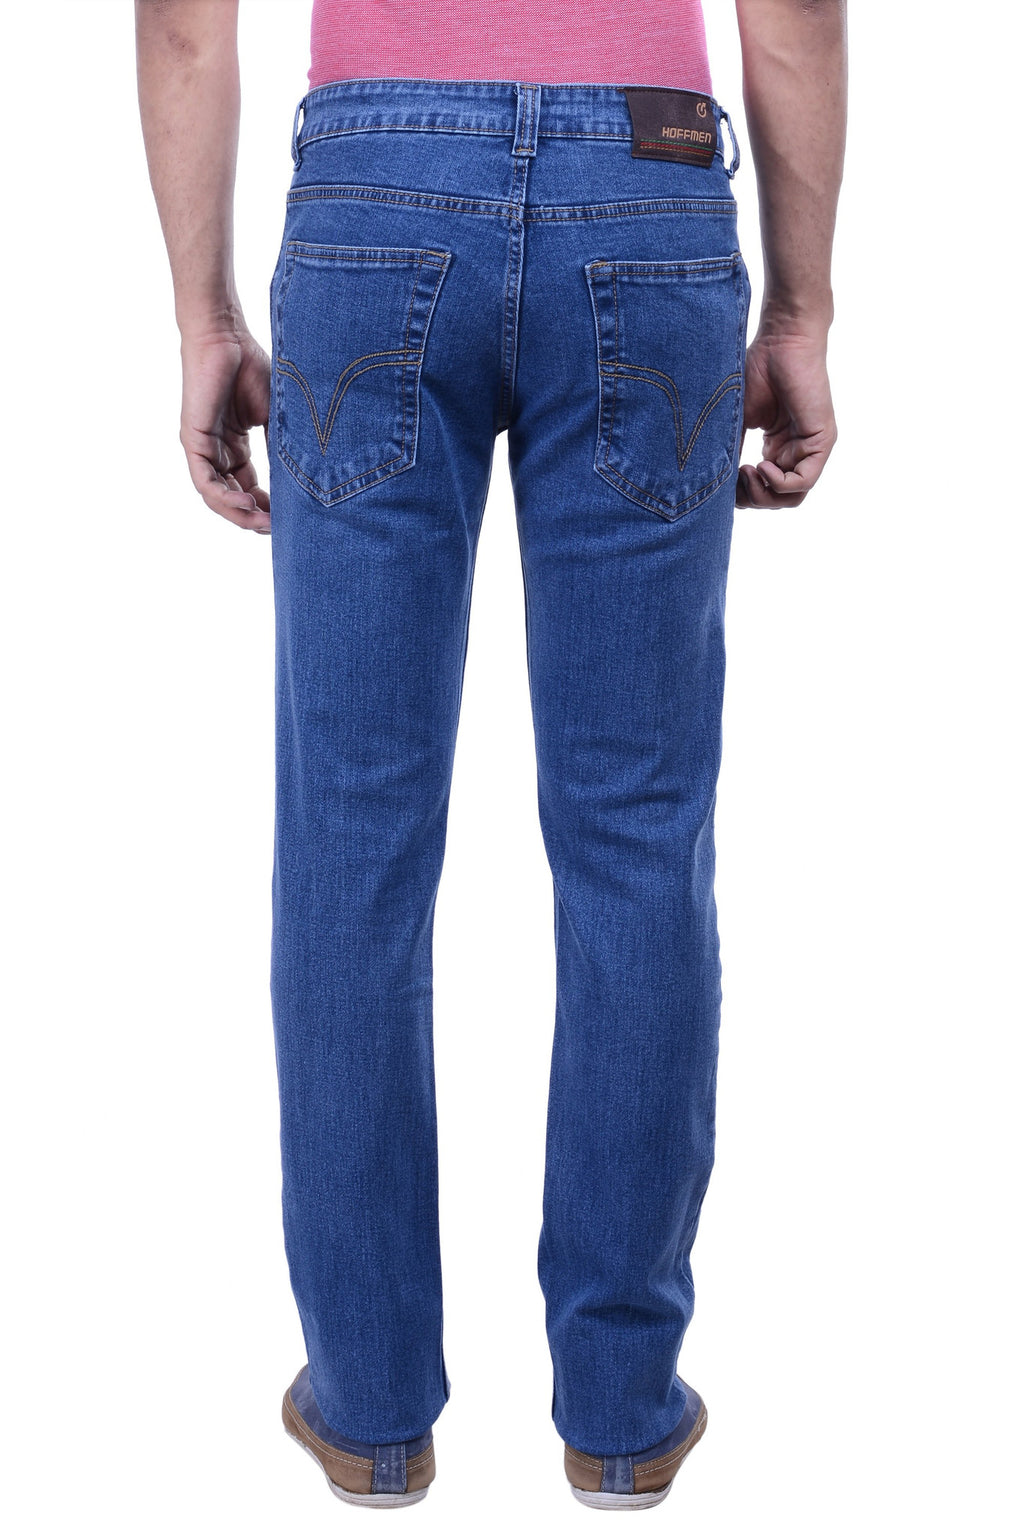 Hoffmen Slim Fit Semi Bleach Jeans BSG3902